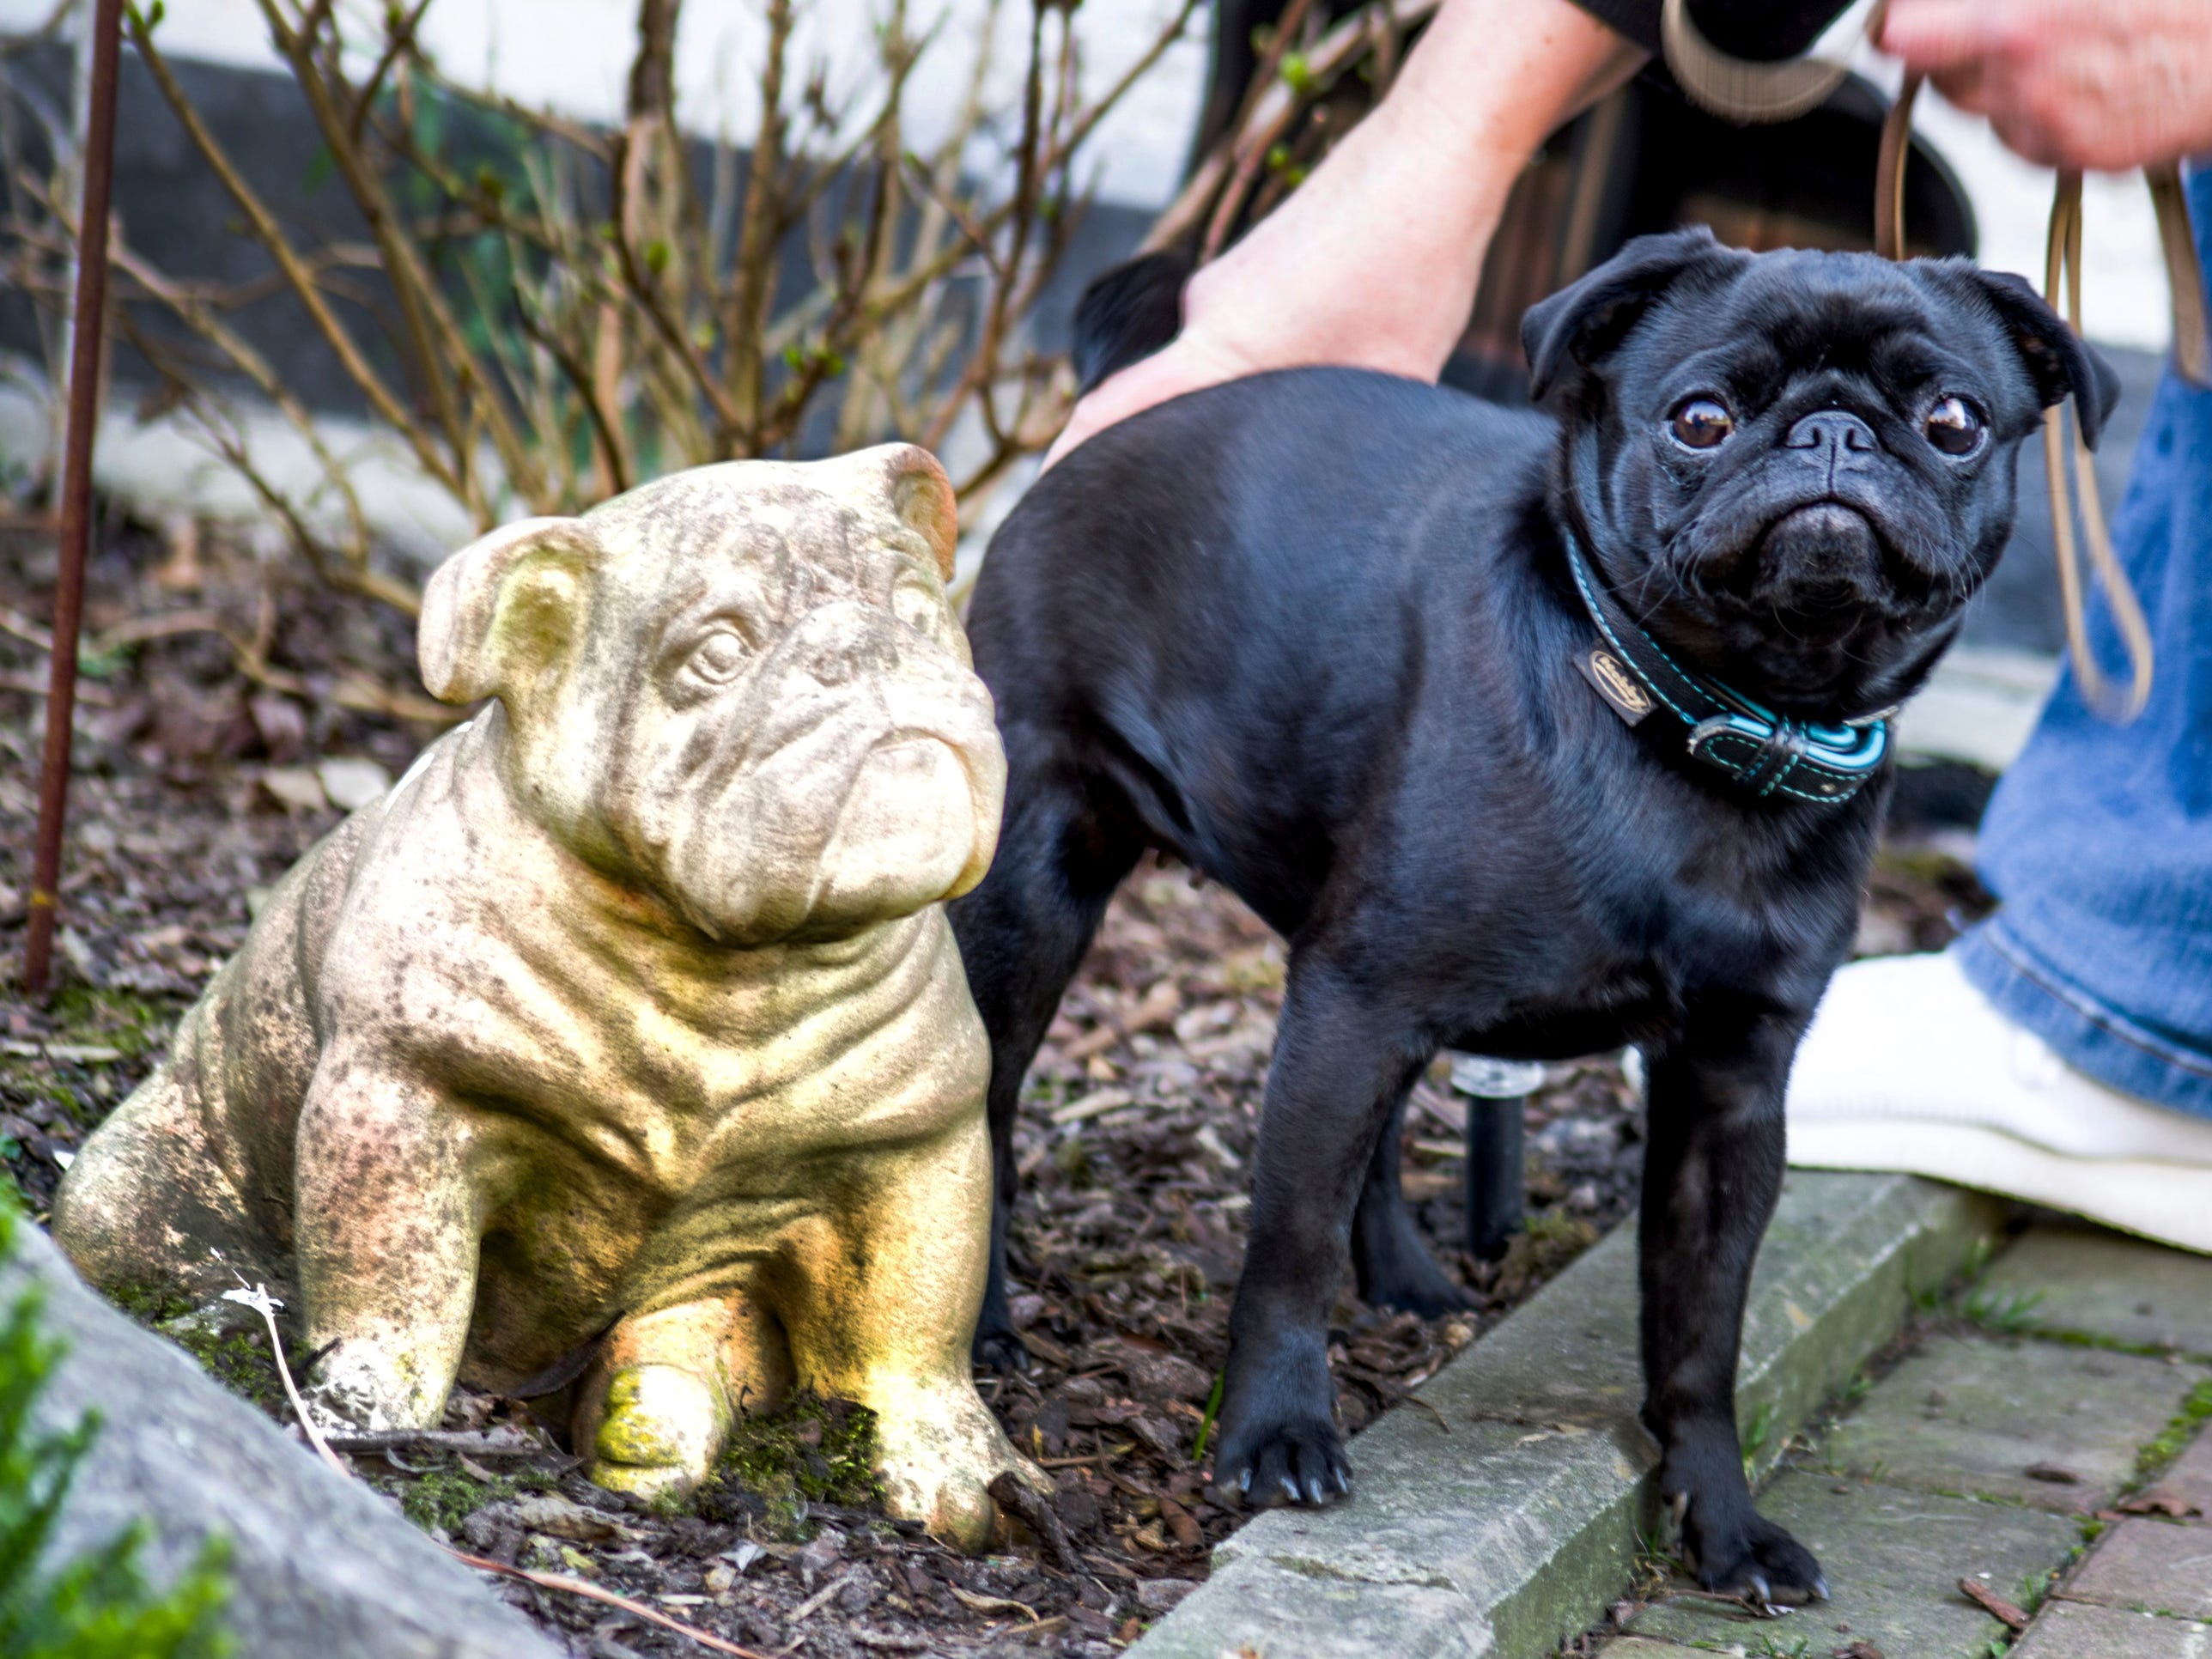 German officials are defending their decision to seize an indebted family's pet pug, pictured above in Duesseldorf, Wednesday, Feb. 27, 2019, and sell it on eBay, saying the move was a last resort because authorities were unable to find anything else to take.